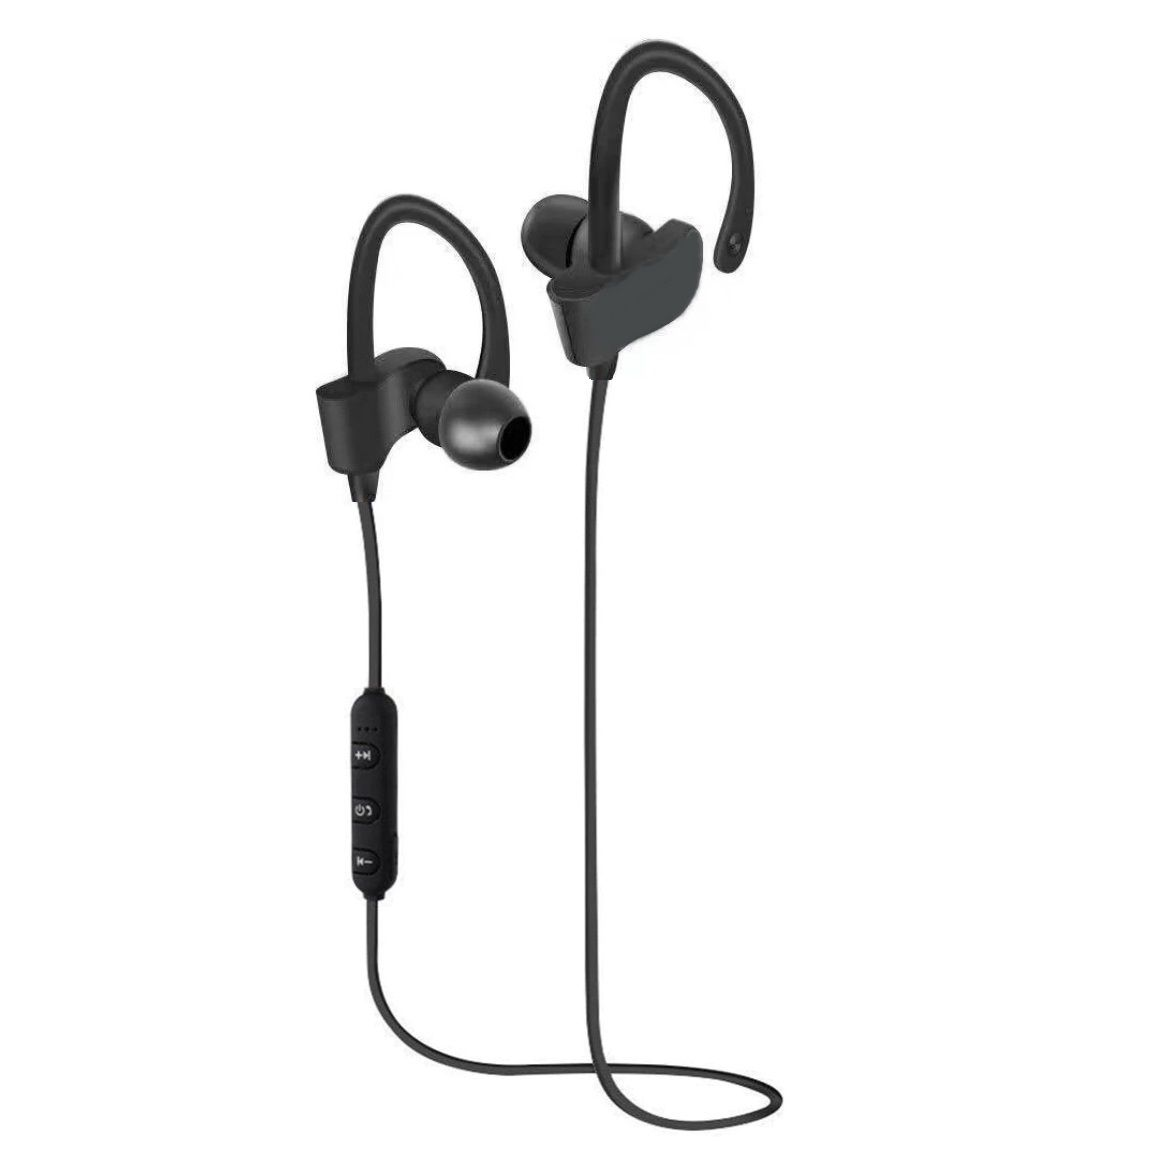 Freckle QC-10 Bluetooth Wireless Headphones Running,Gyming Headset With LED USB Light Lamp/LED USB Bulb Mini LED For USB Device.